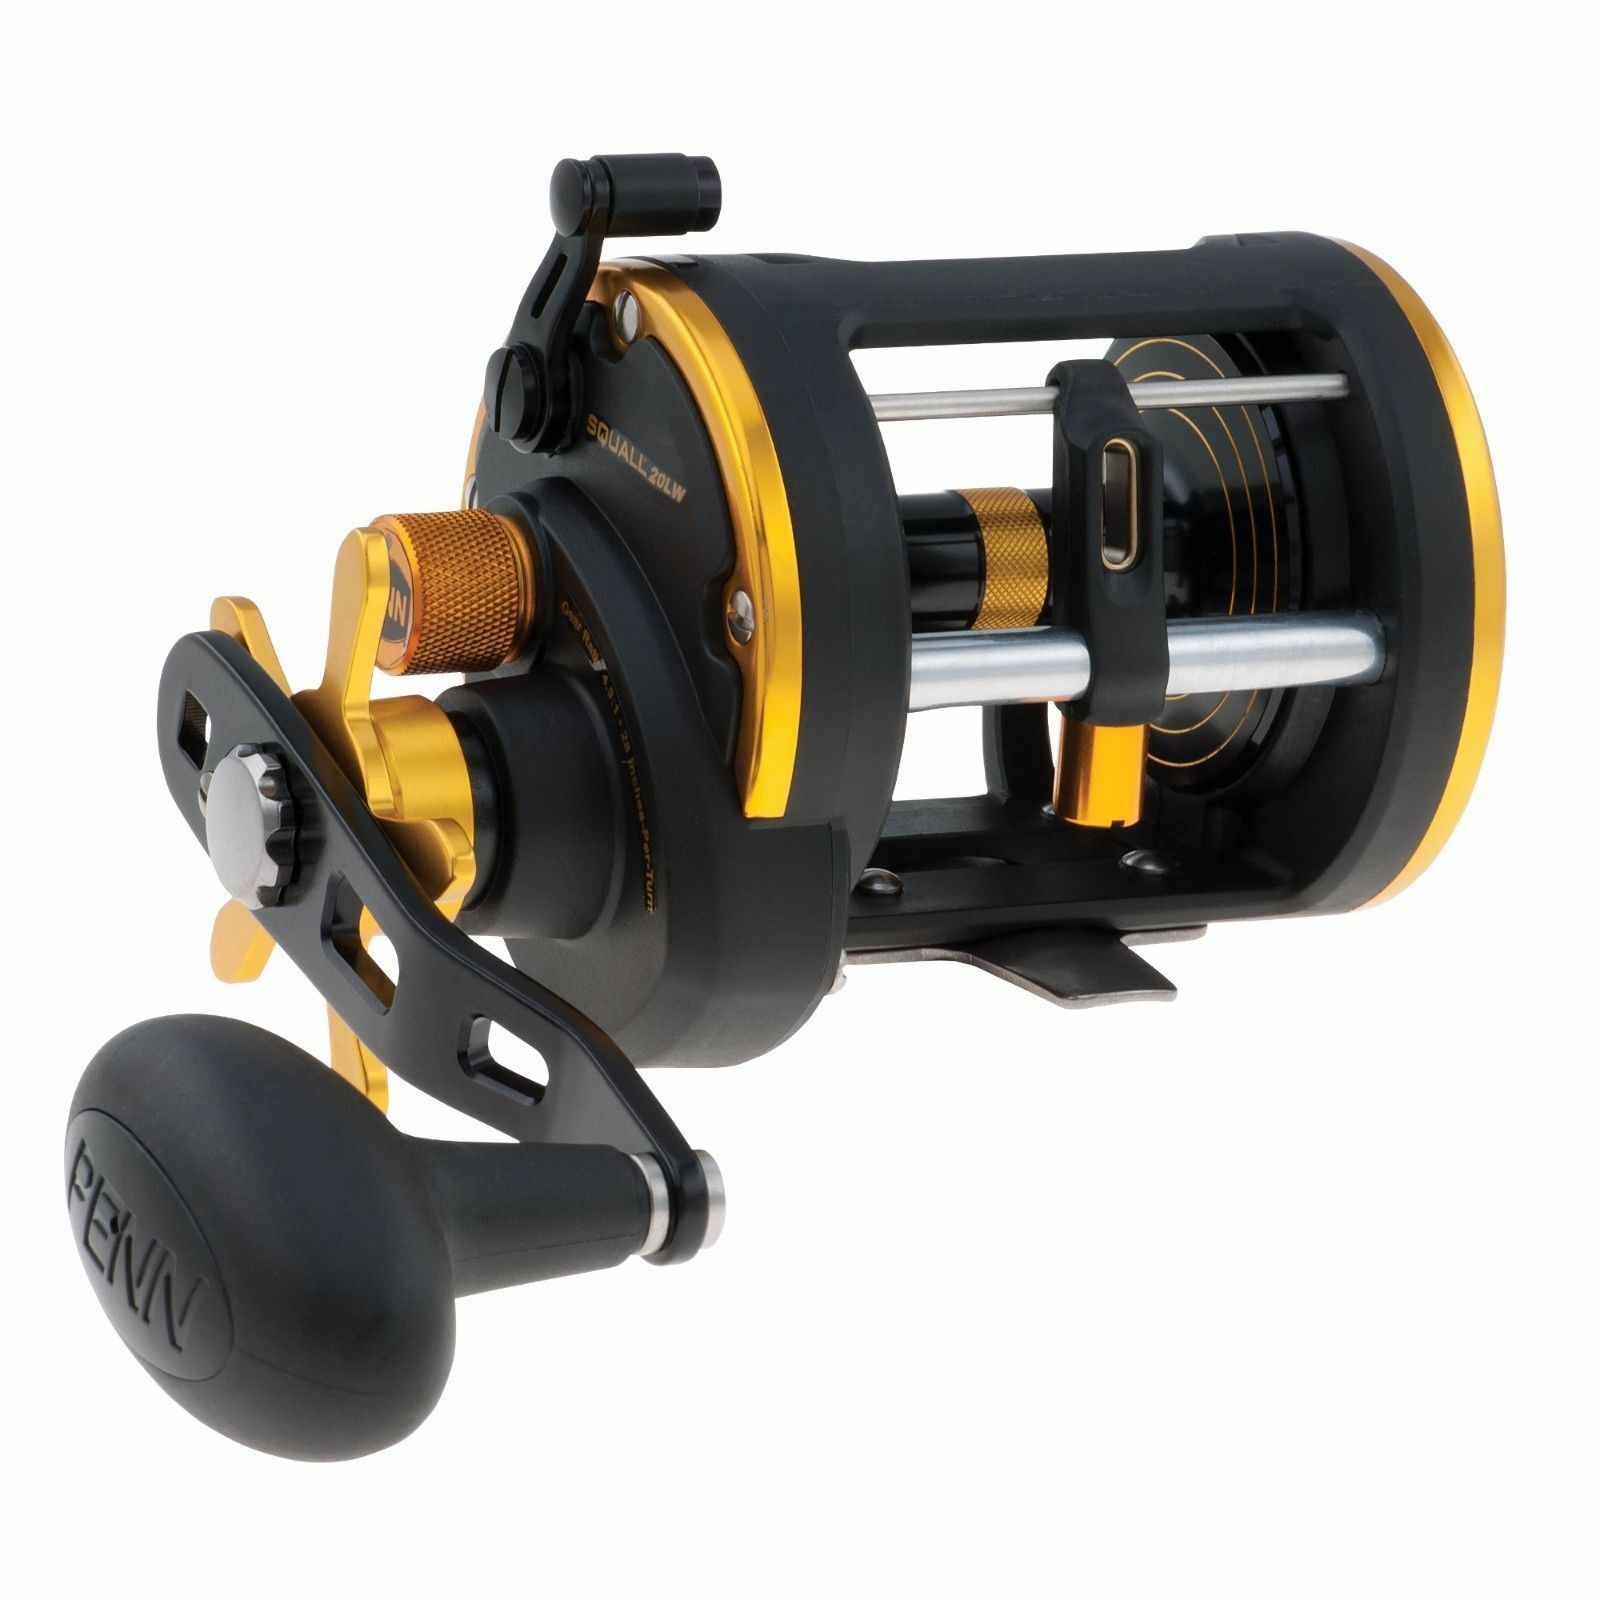 Penn Squall  Level Wind Multiplier Fishing Reels - All Models    fast shipping to you